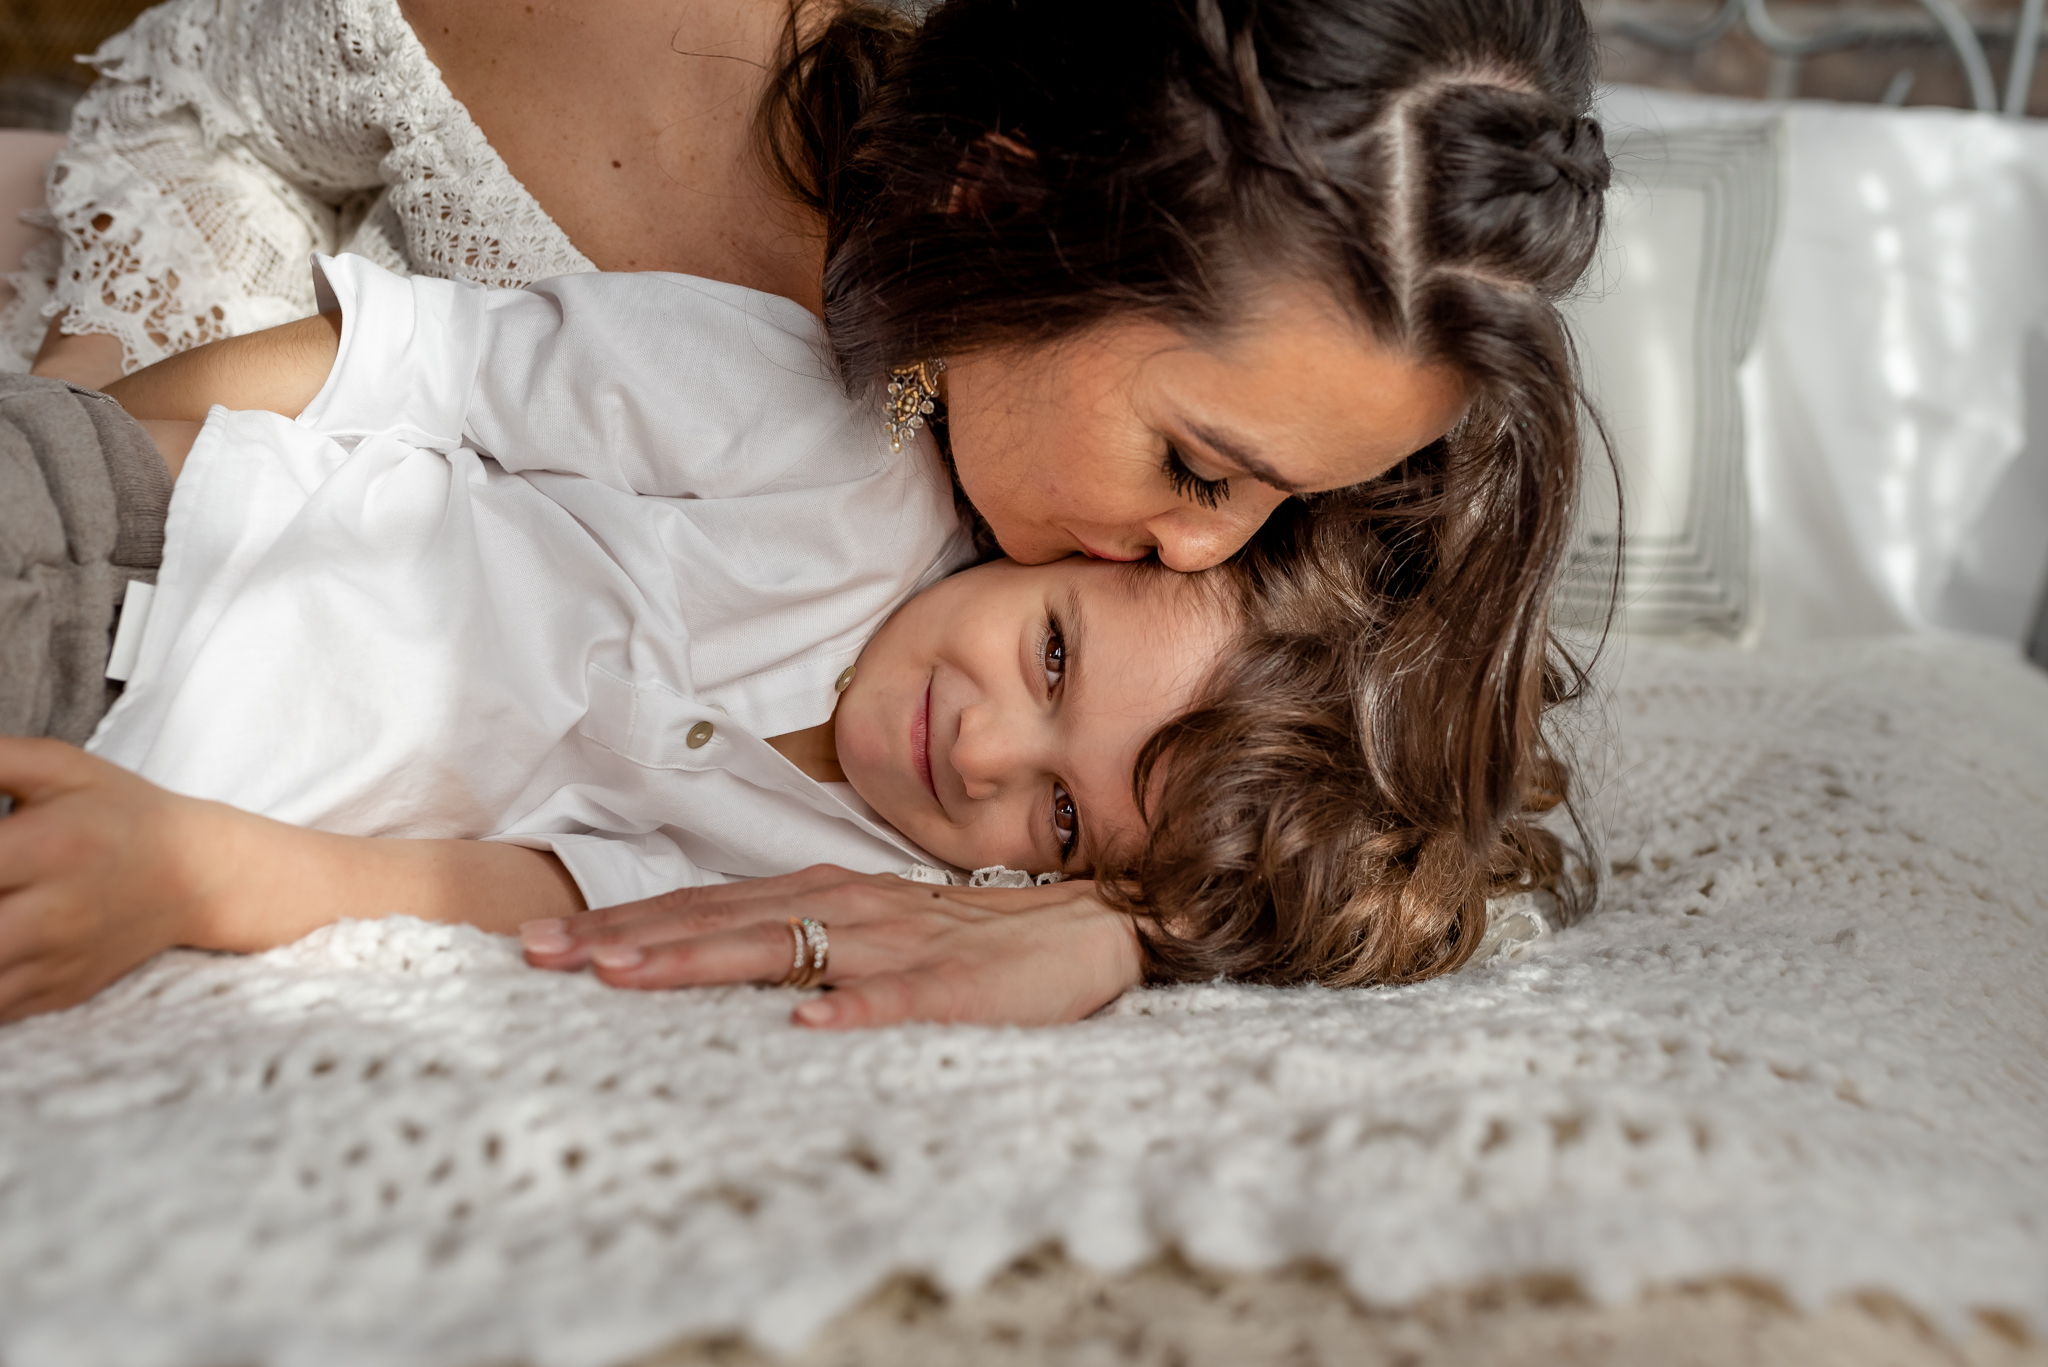 Beautiful mom and her baby boy in a natural light, boho studio with a brick wall, textures accents, peacock chair, and neutral details. Kisses and smiles all around!